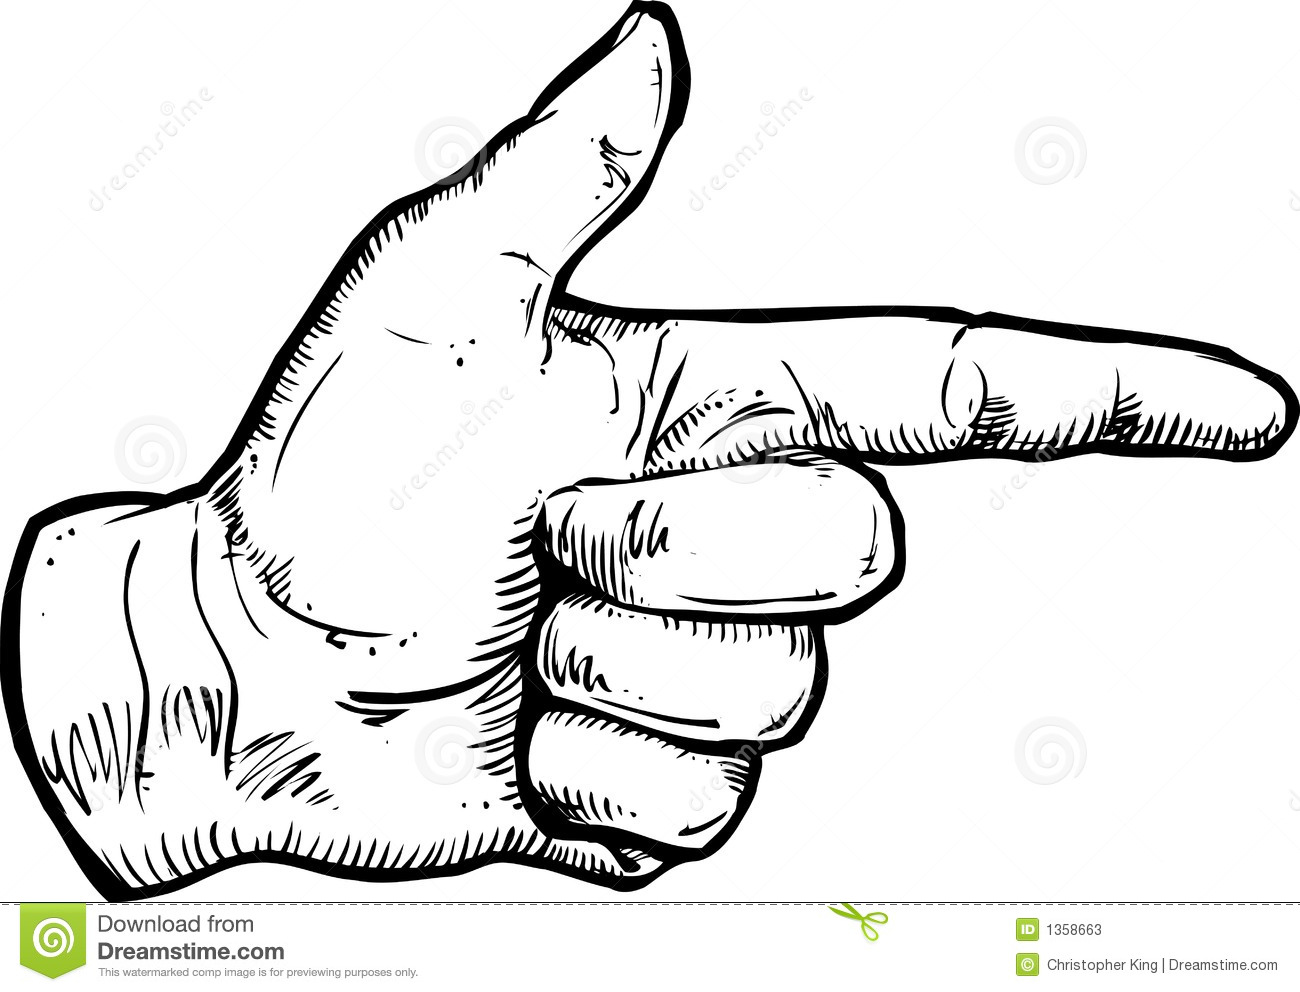 Pointing Hand Illustration Stock Photos - Image: 1358663